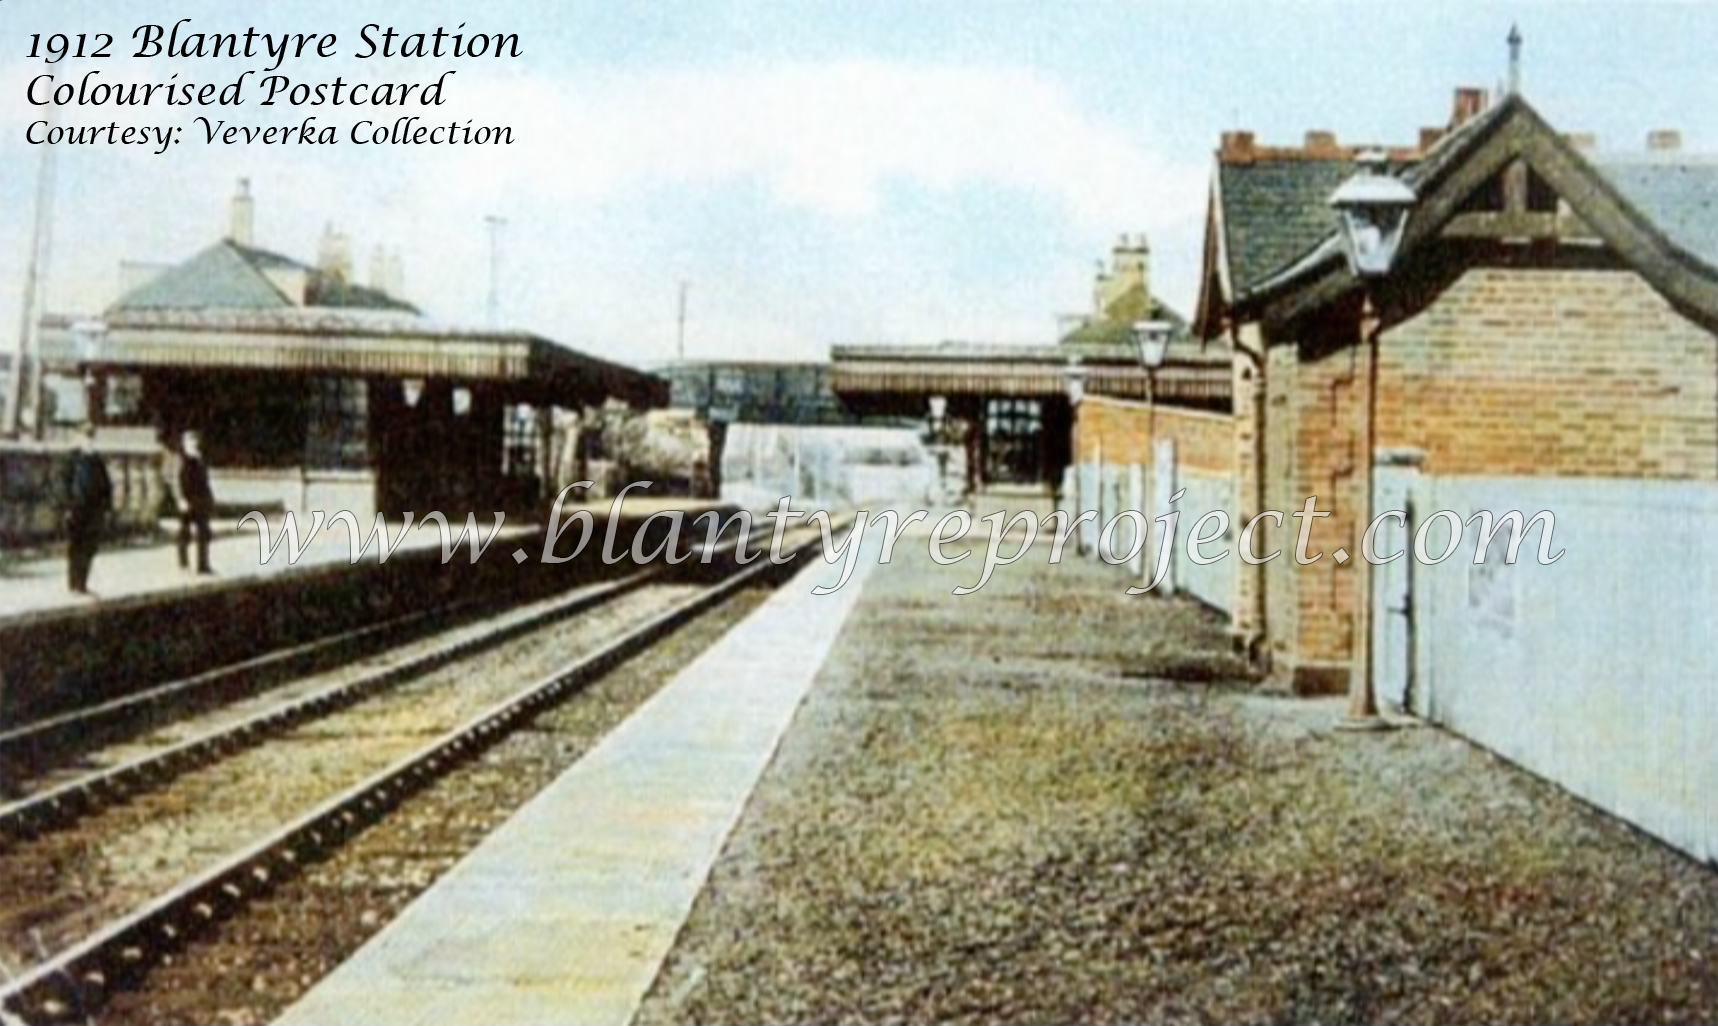 1912 Blantyre Station colourised